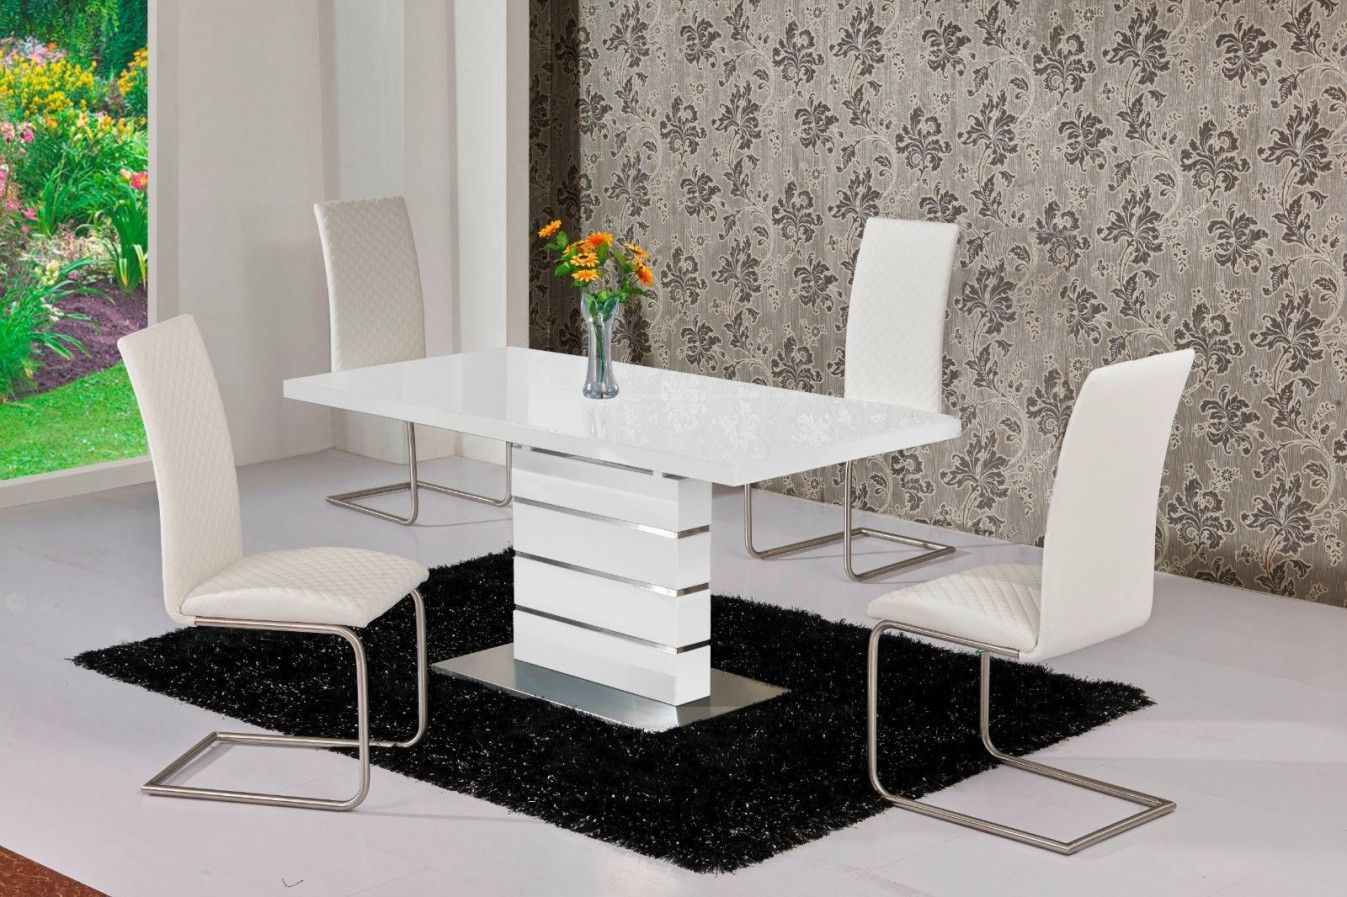 2019 White High Gloss Dining Table 6 Chairs Modern Style Furniture Check More At Http